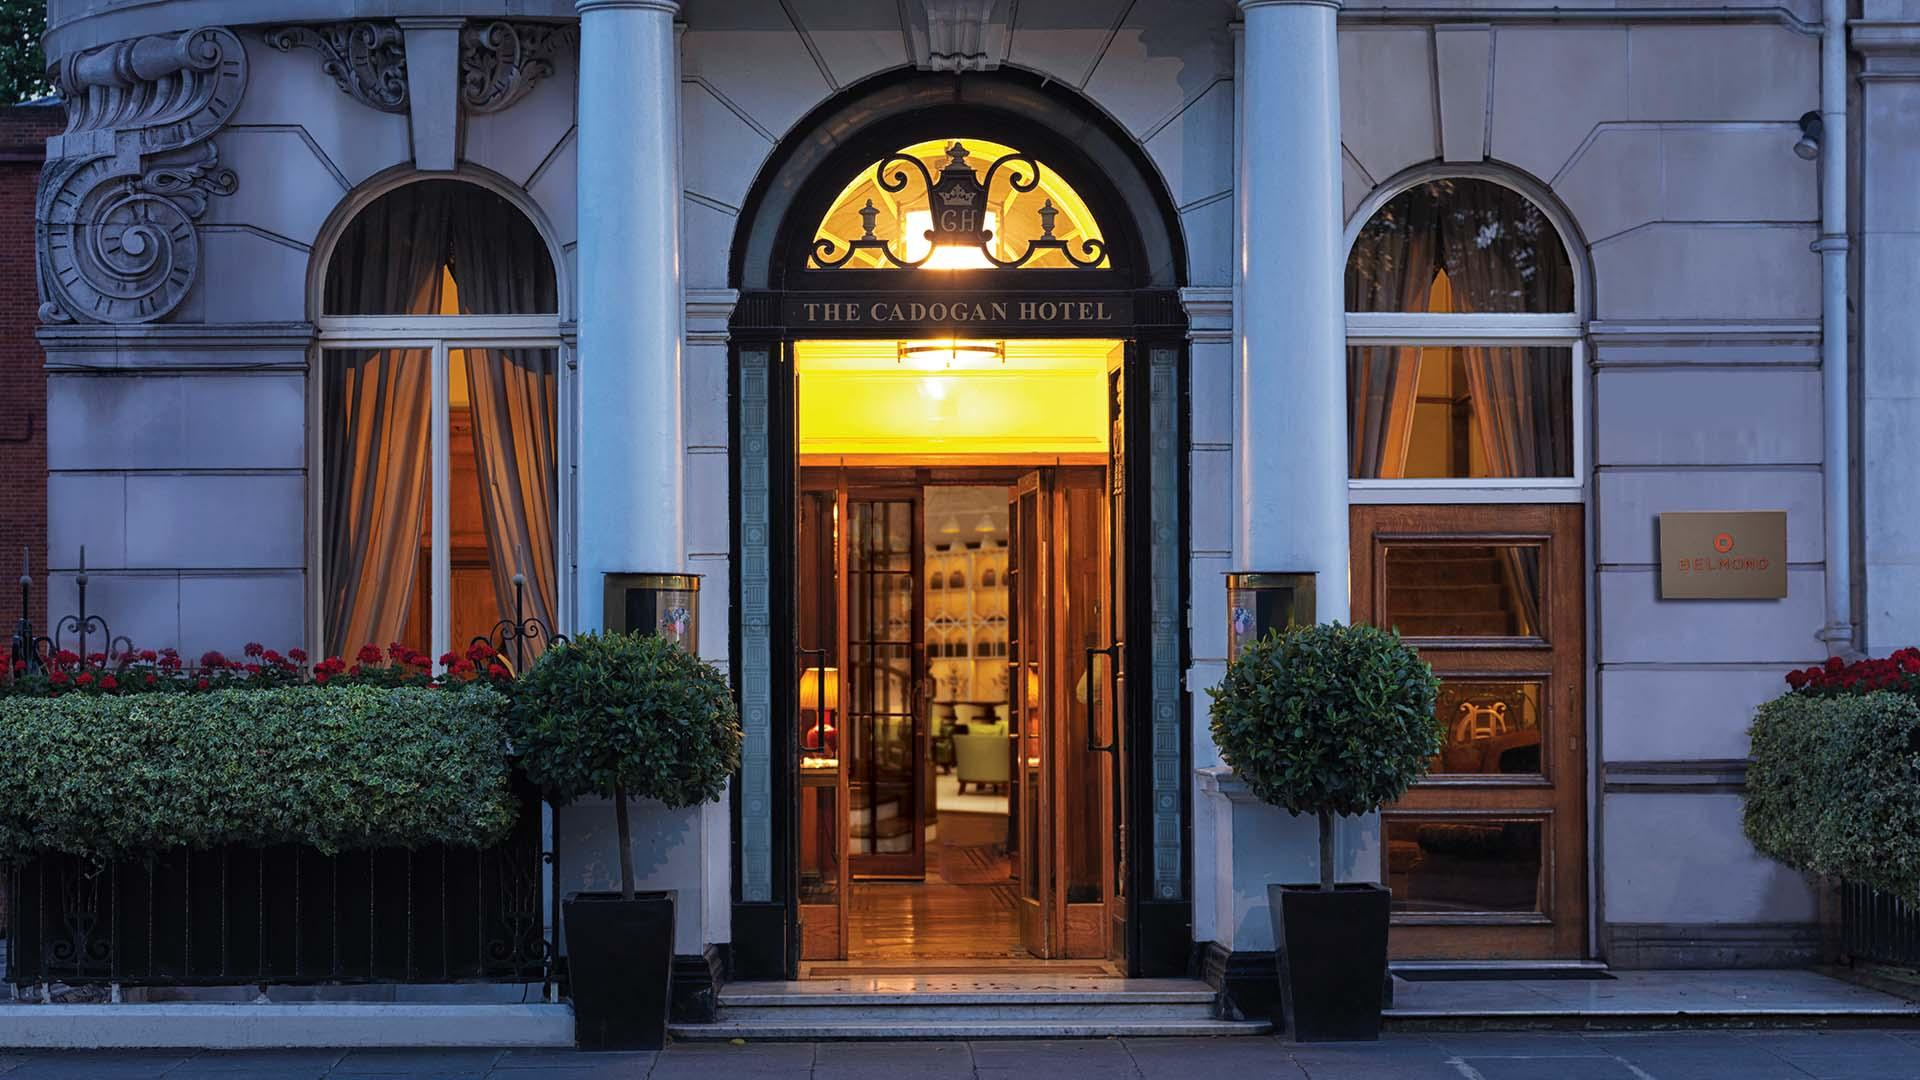 Entrance of the newly refurshbished Belmond Cadogan Hotel in London